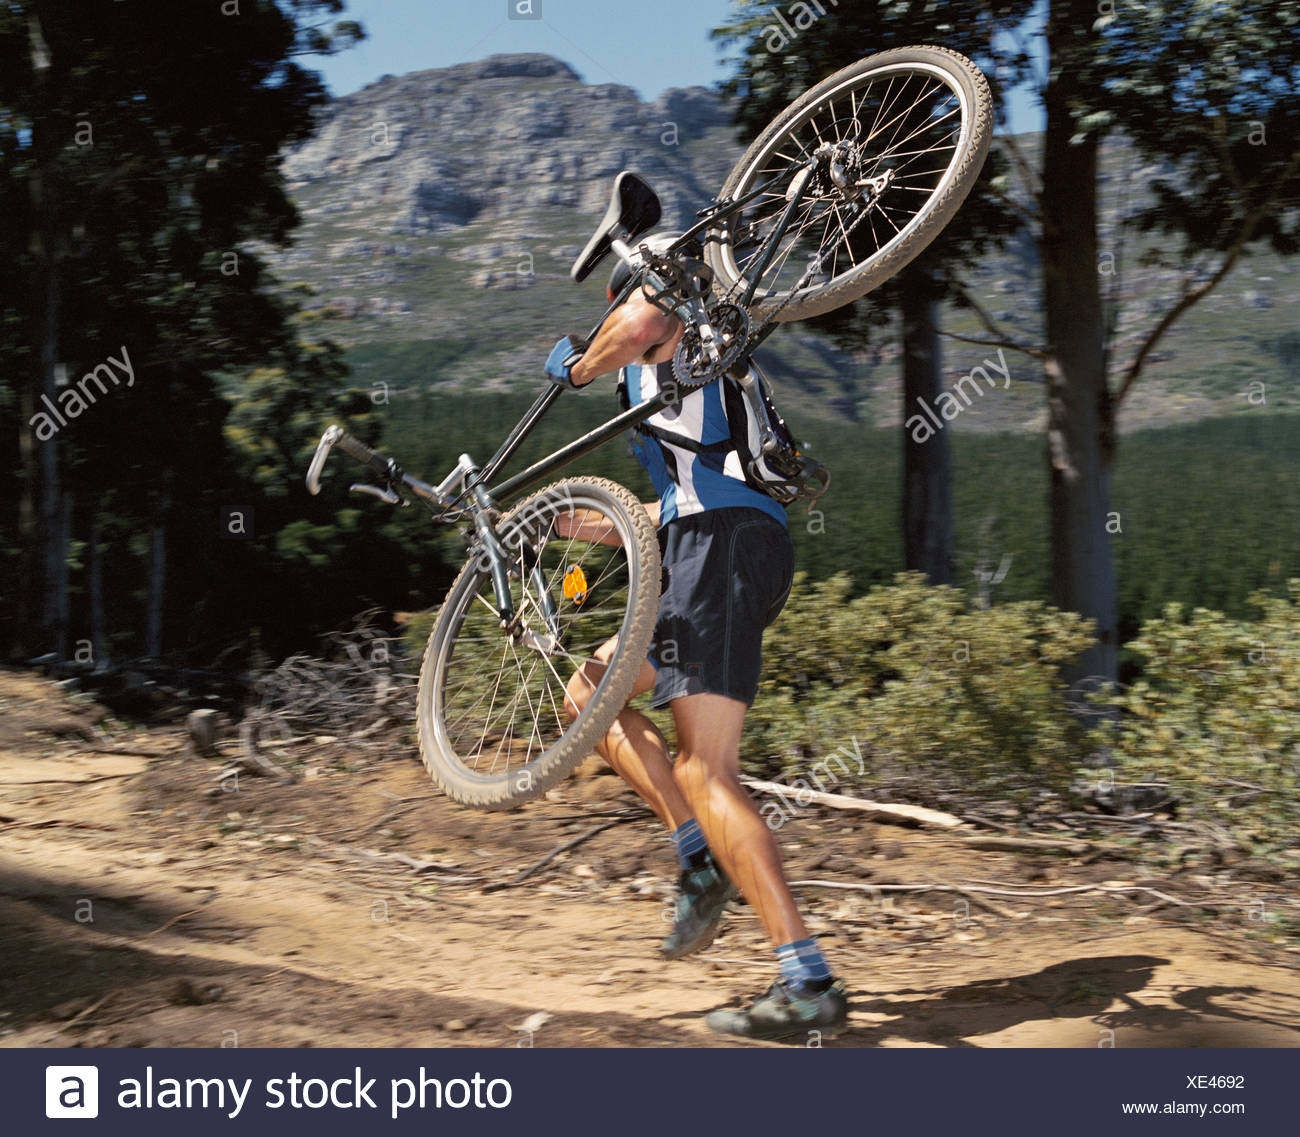 A man carrying a mountain bike on a path - Stock Image